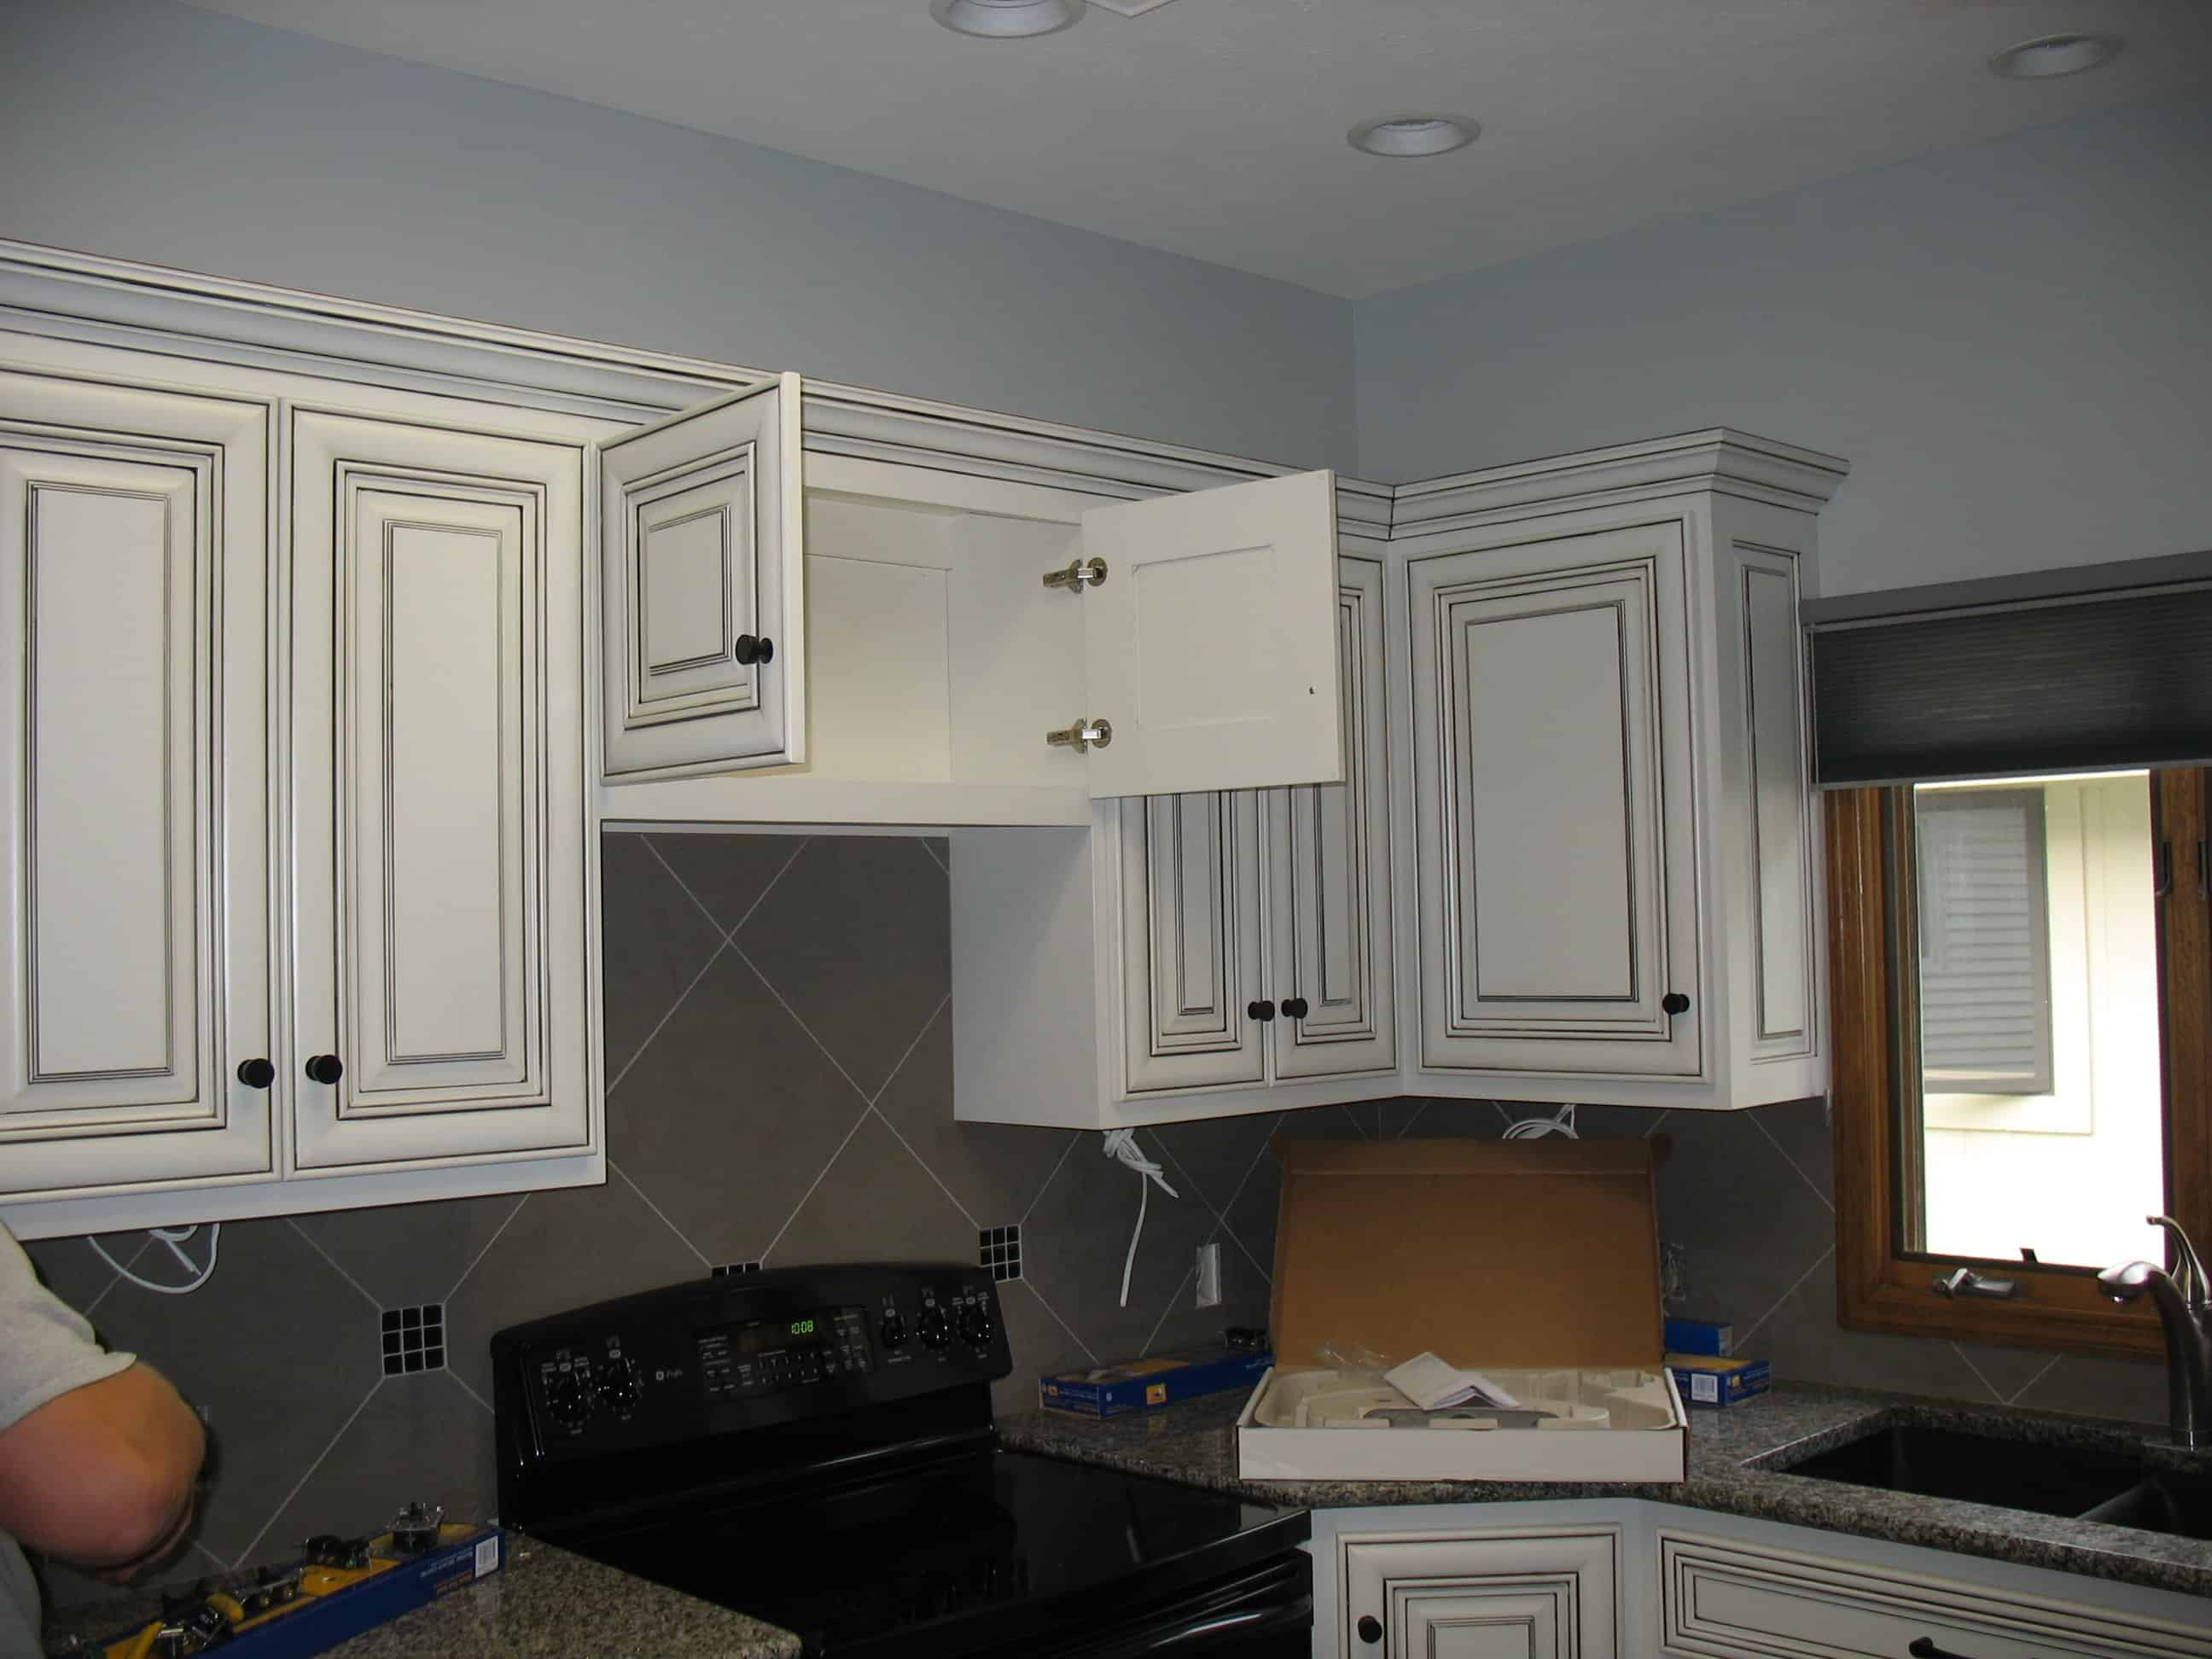 Local omaha remodeling company associated siding and for Local kitchen remodeling